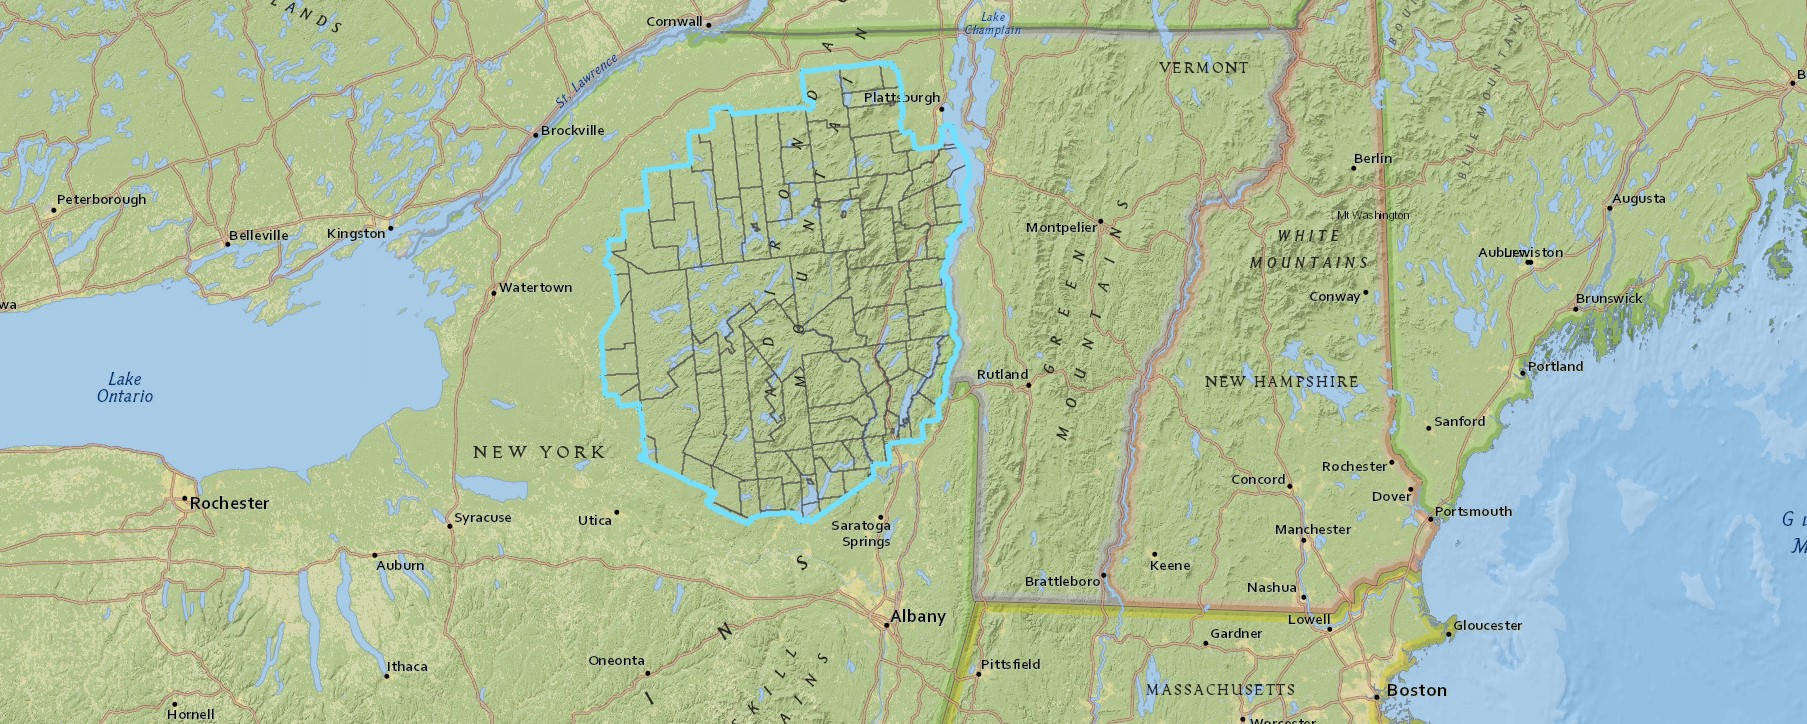 """Map of upstate New York and surrounding states showing the """"Blue Line"""" boundary of the Adirondack Park"""